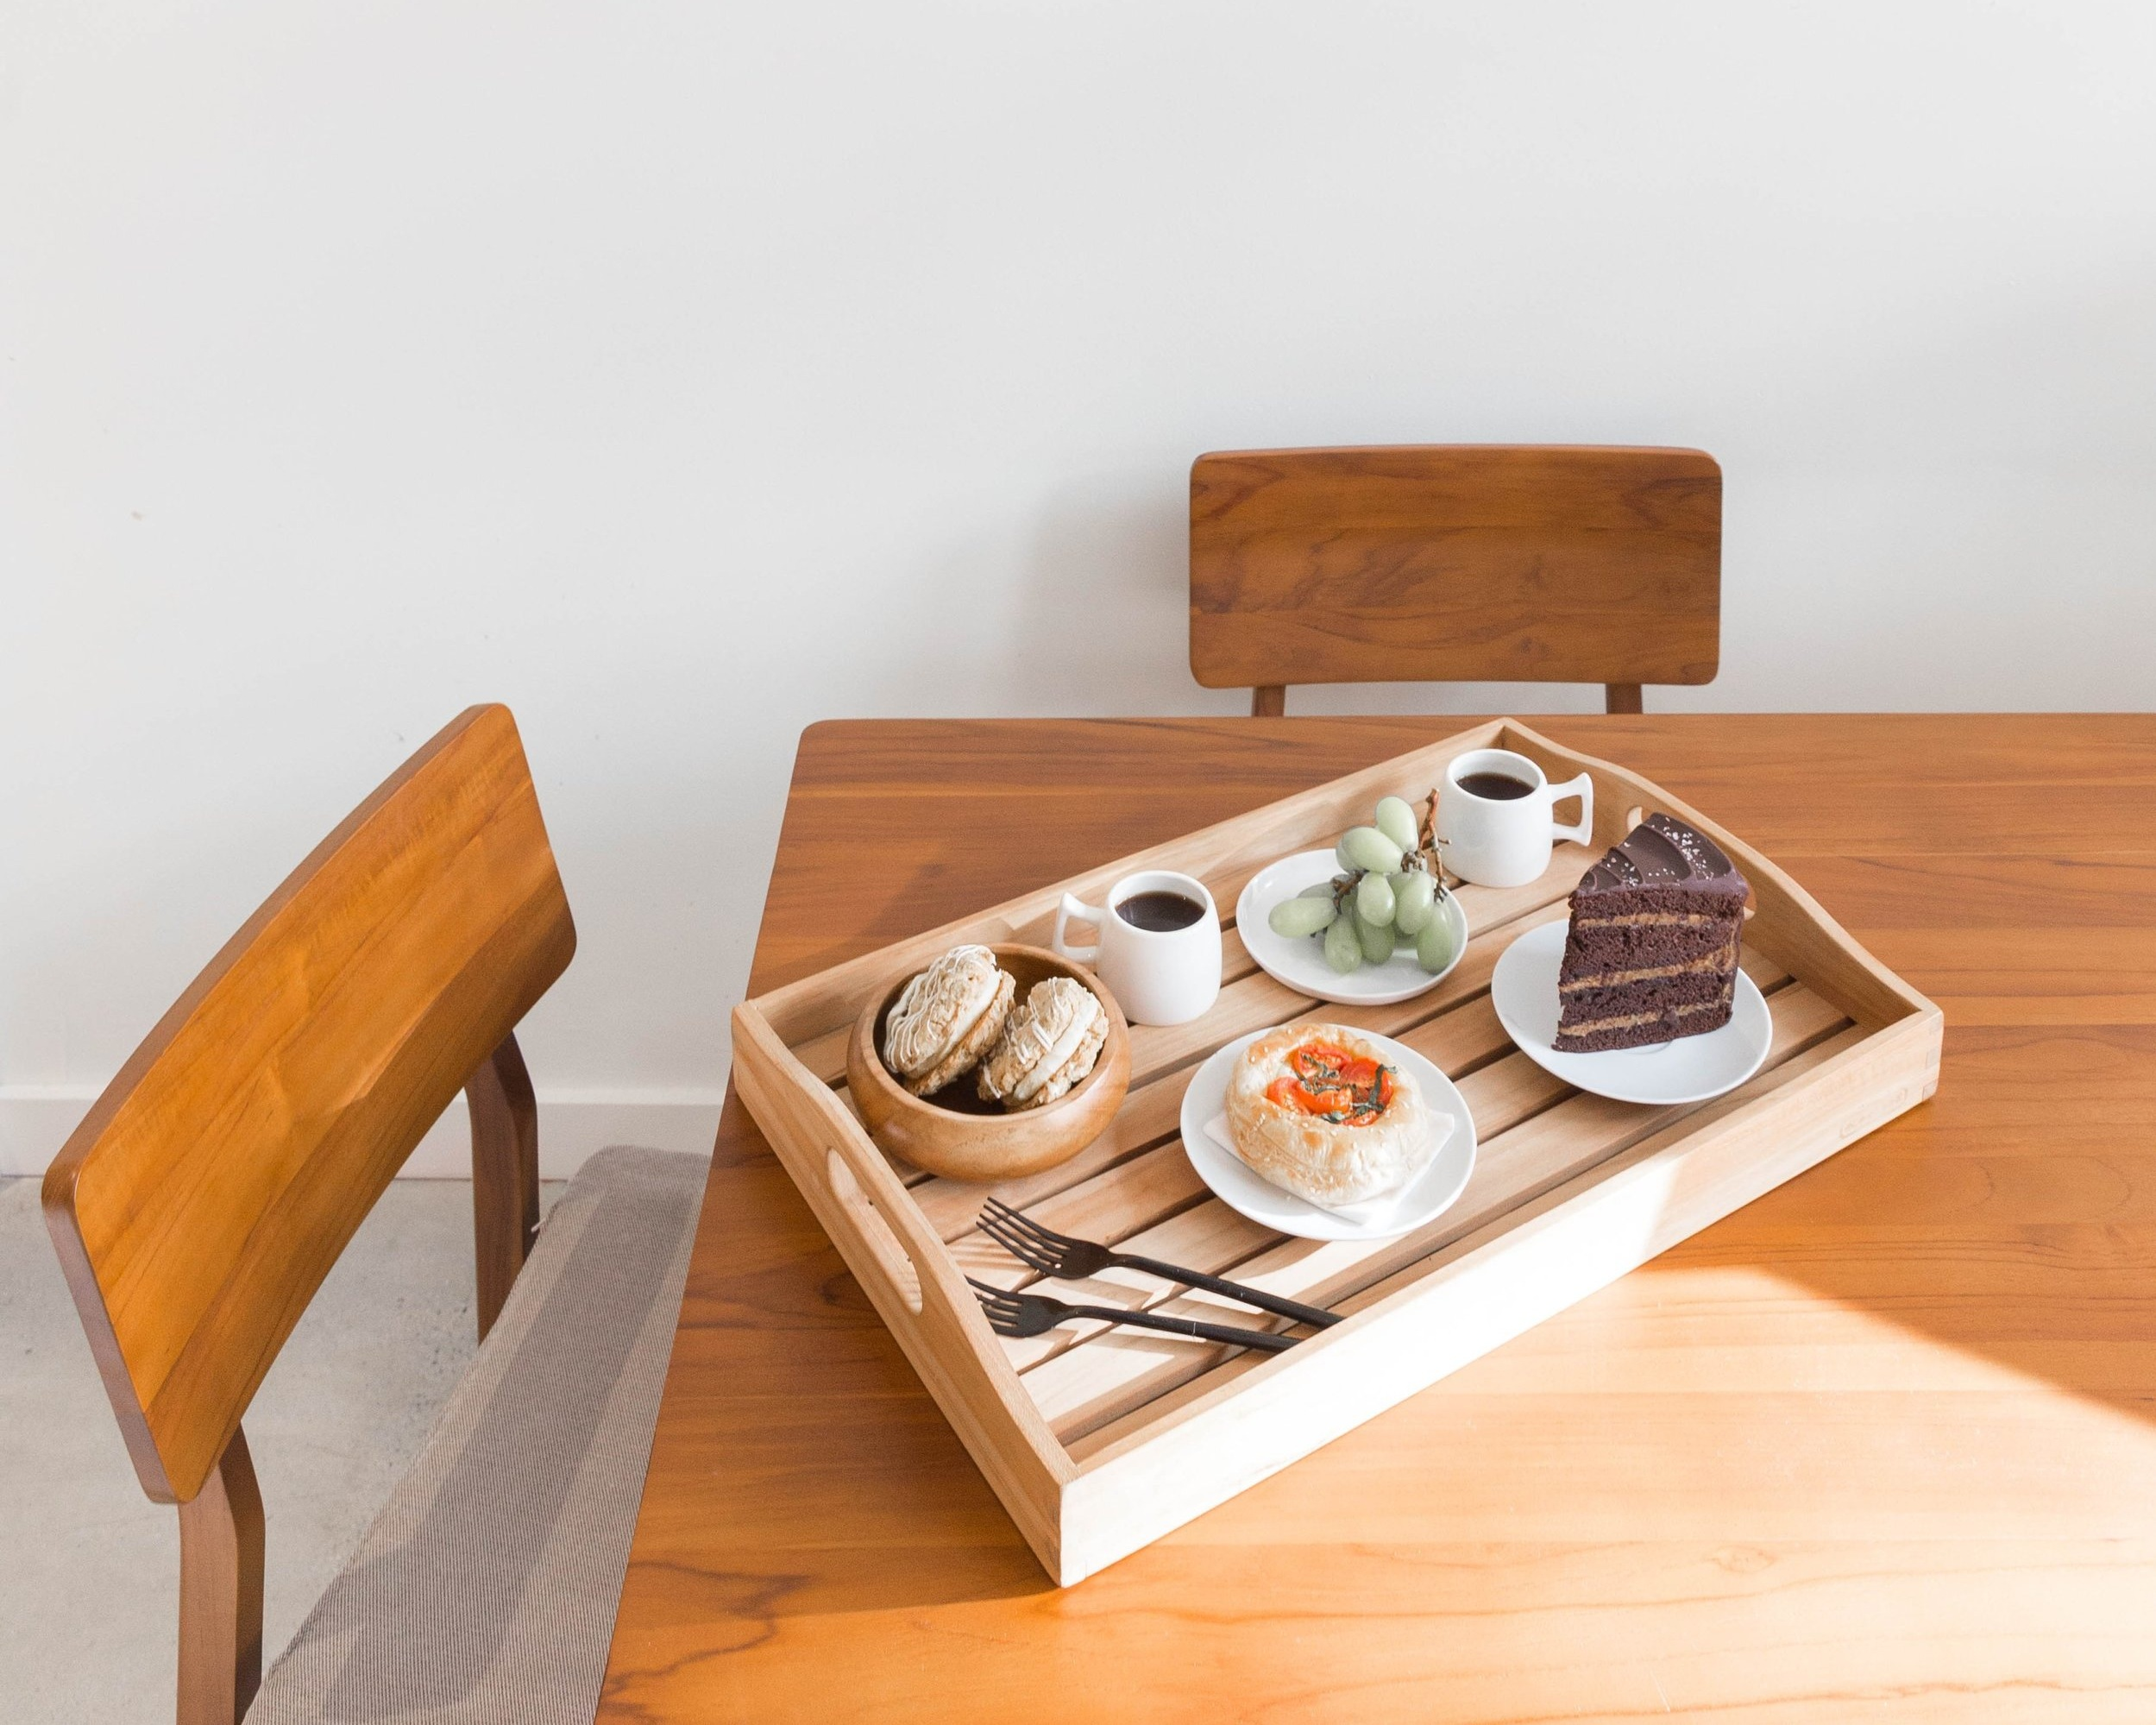 scanteak_canada_photography_product_styling_6.jpg